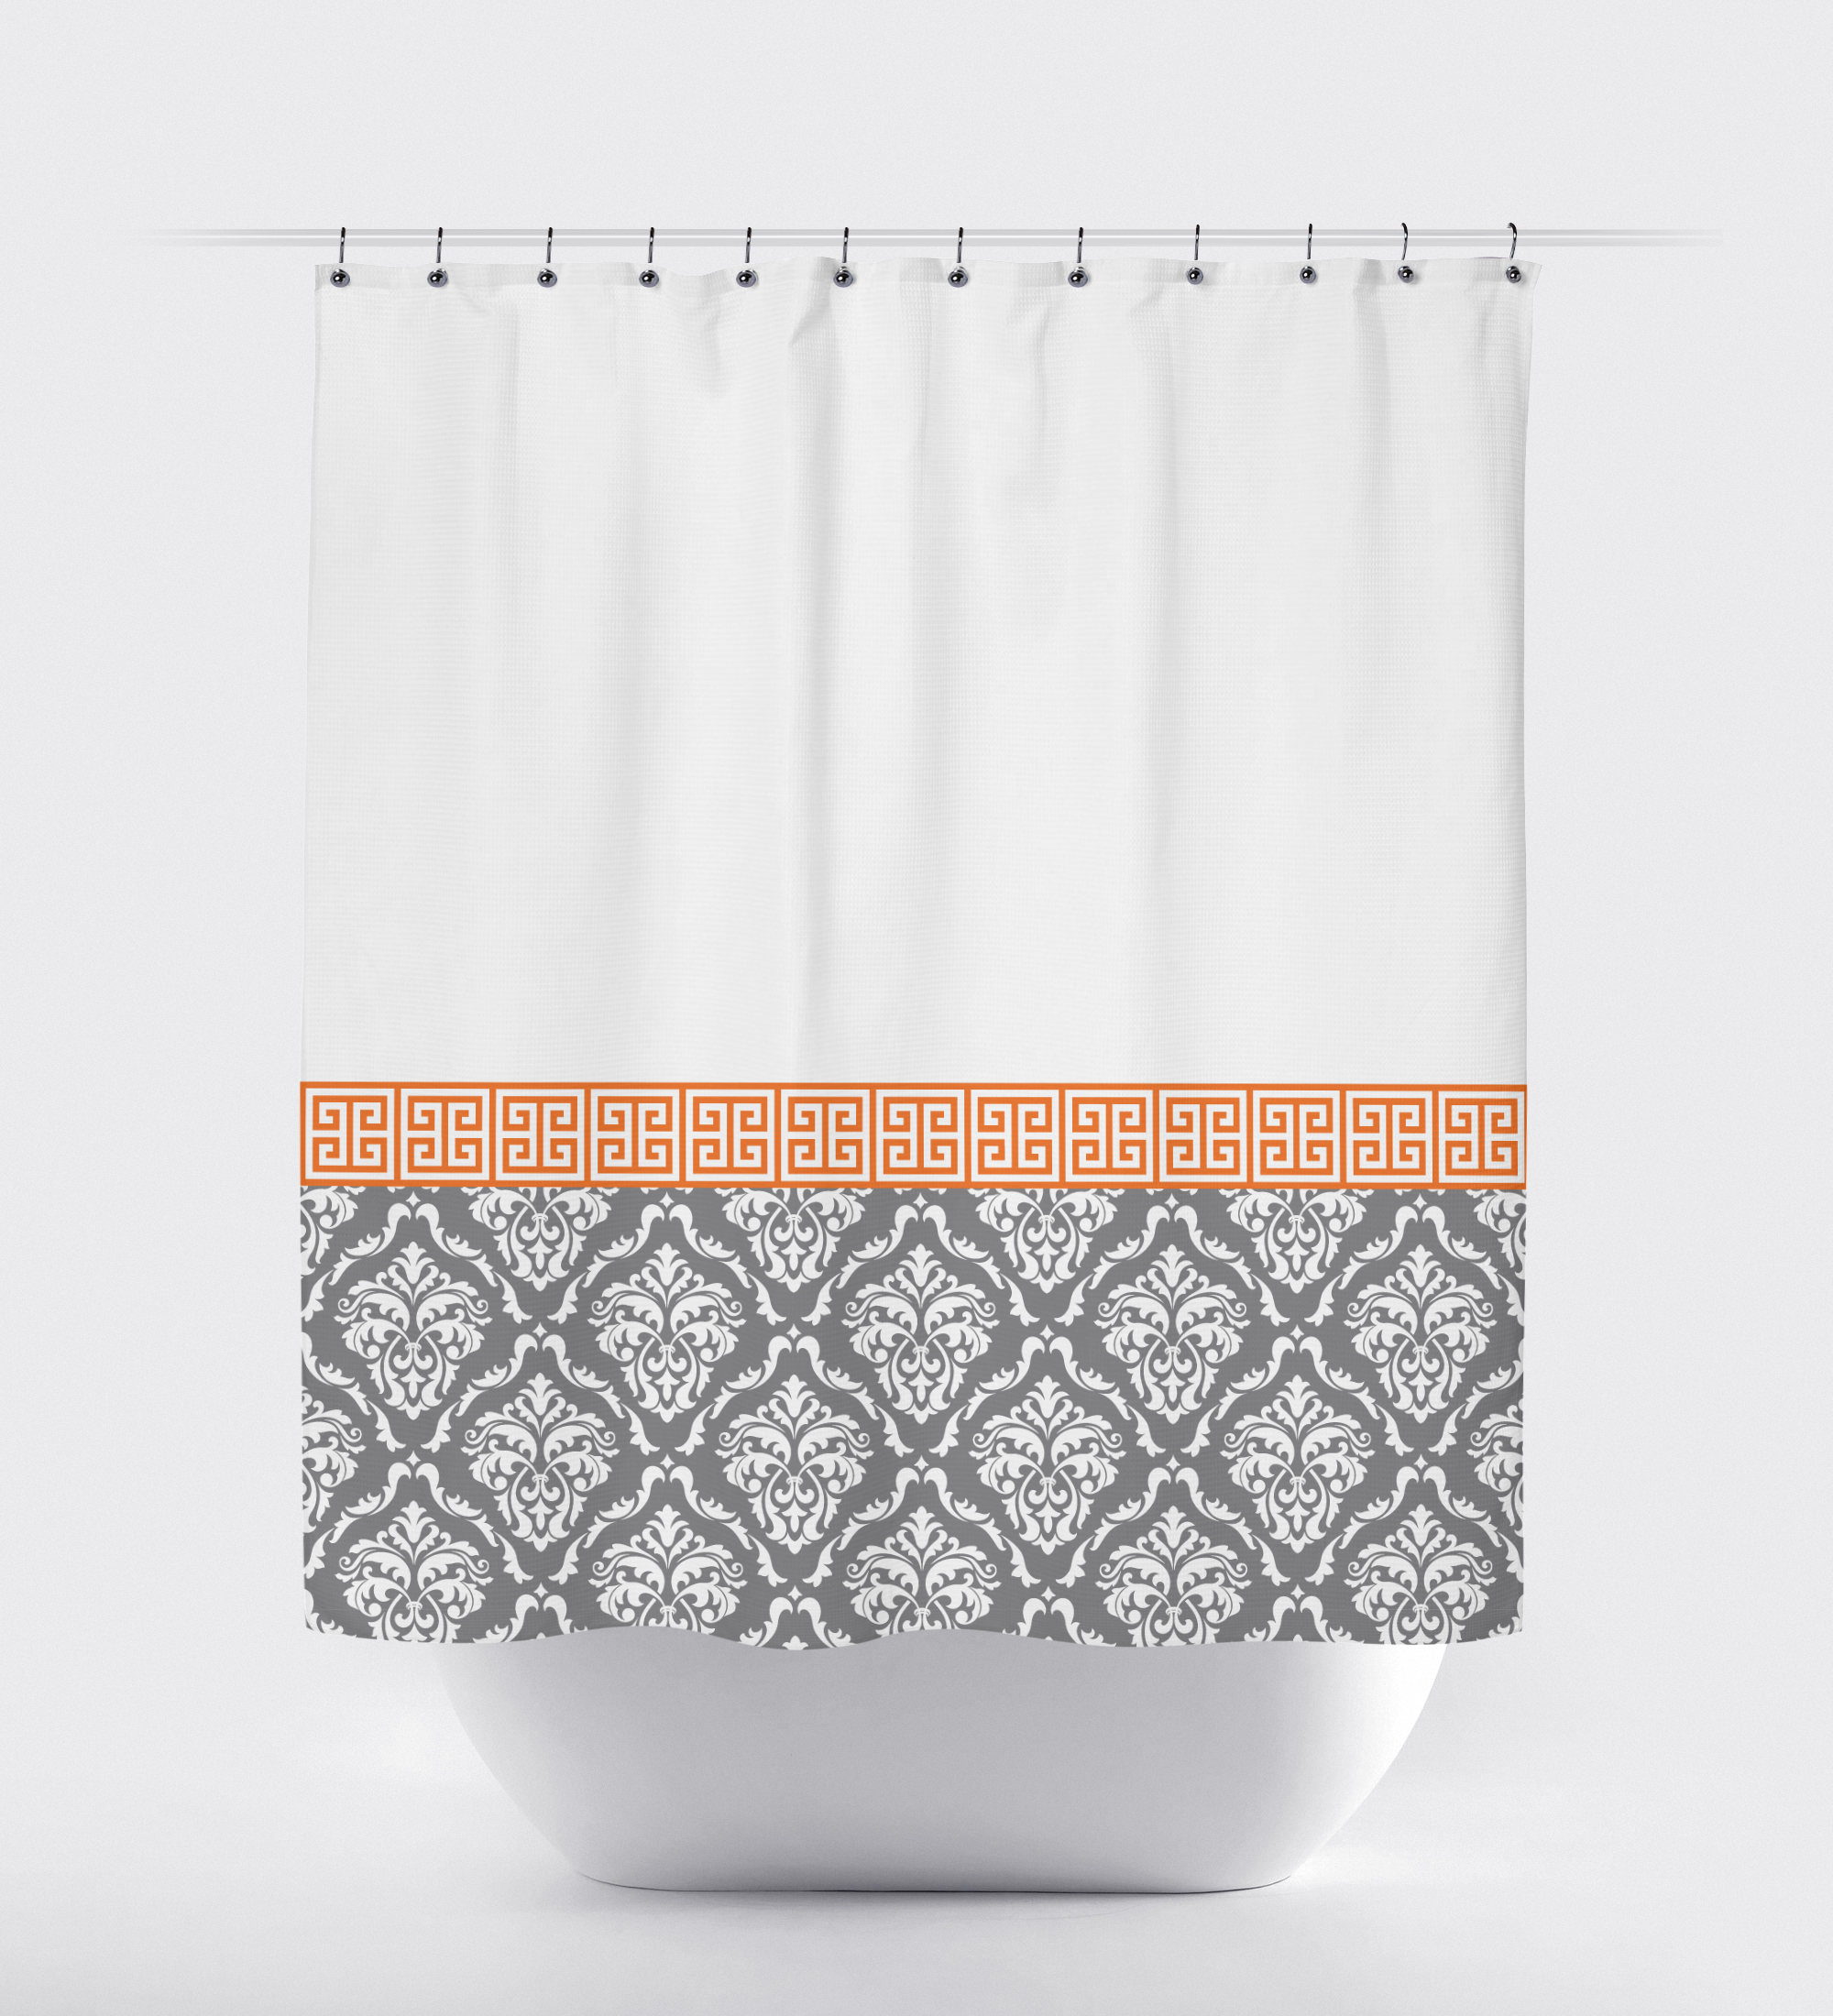 Damask And Greek Key Shower Curtain Hot Pink Black White Or pertaining to measurements 2000 X 2200